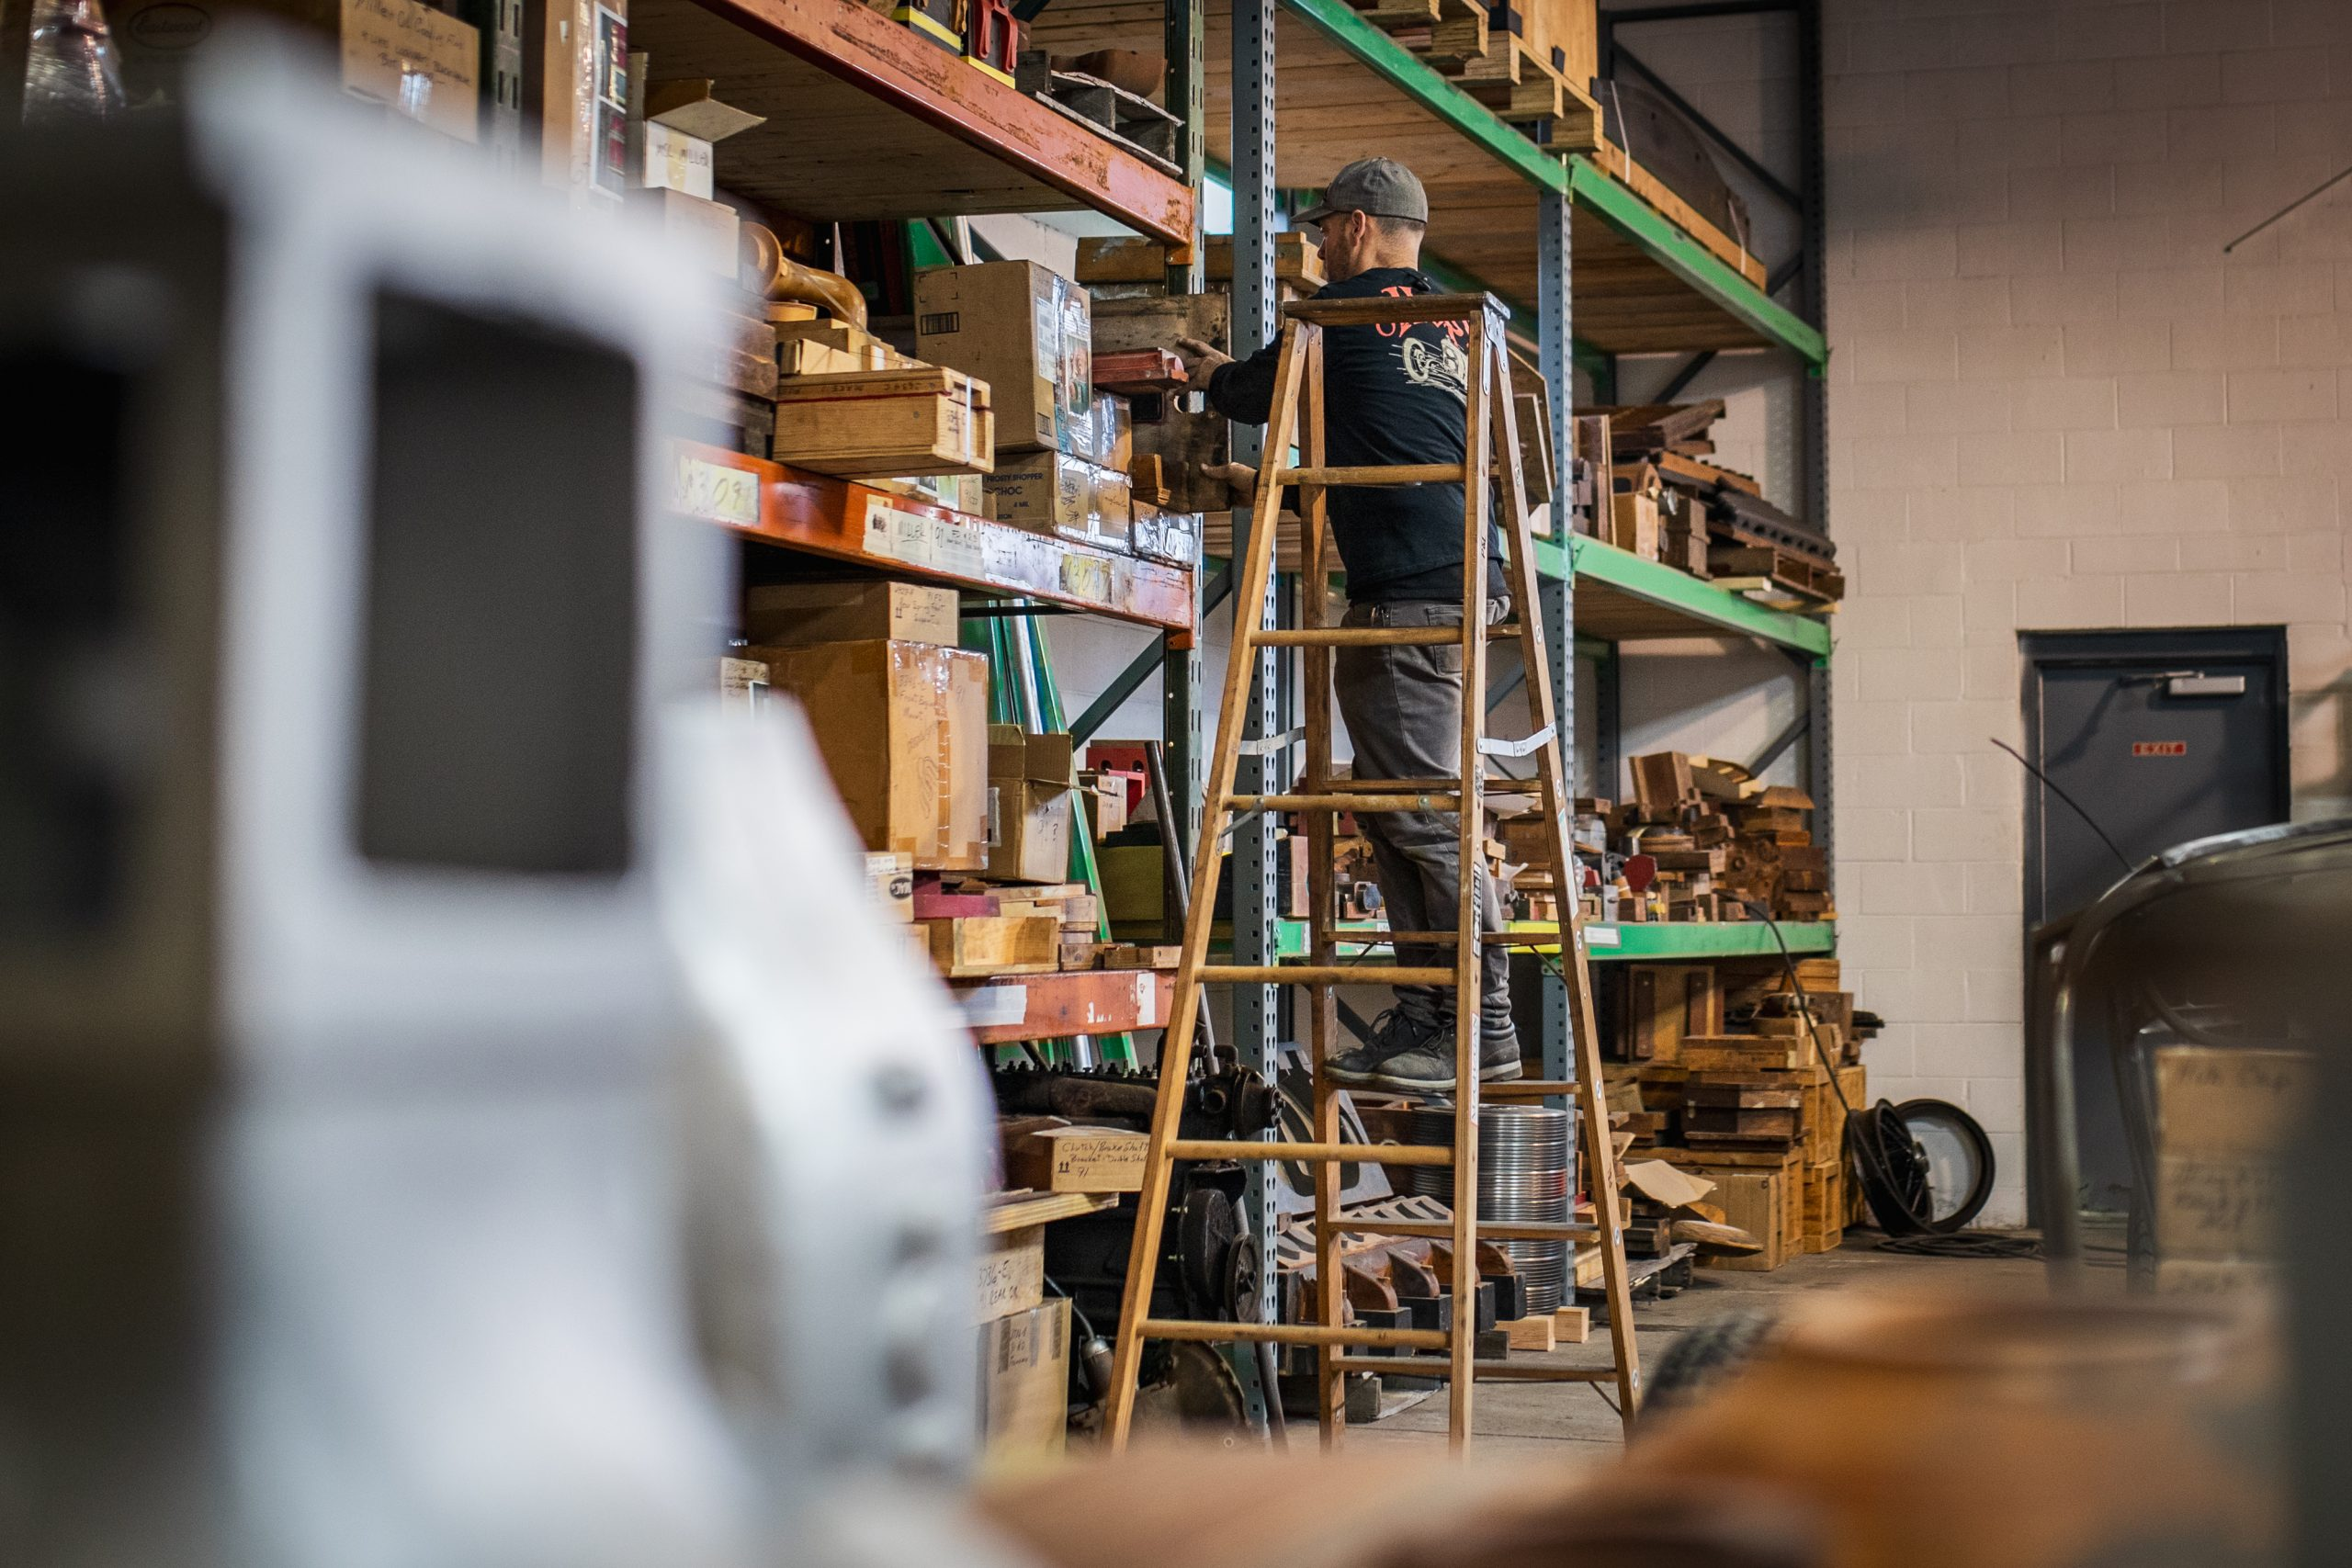 worker on ladder searching shelves